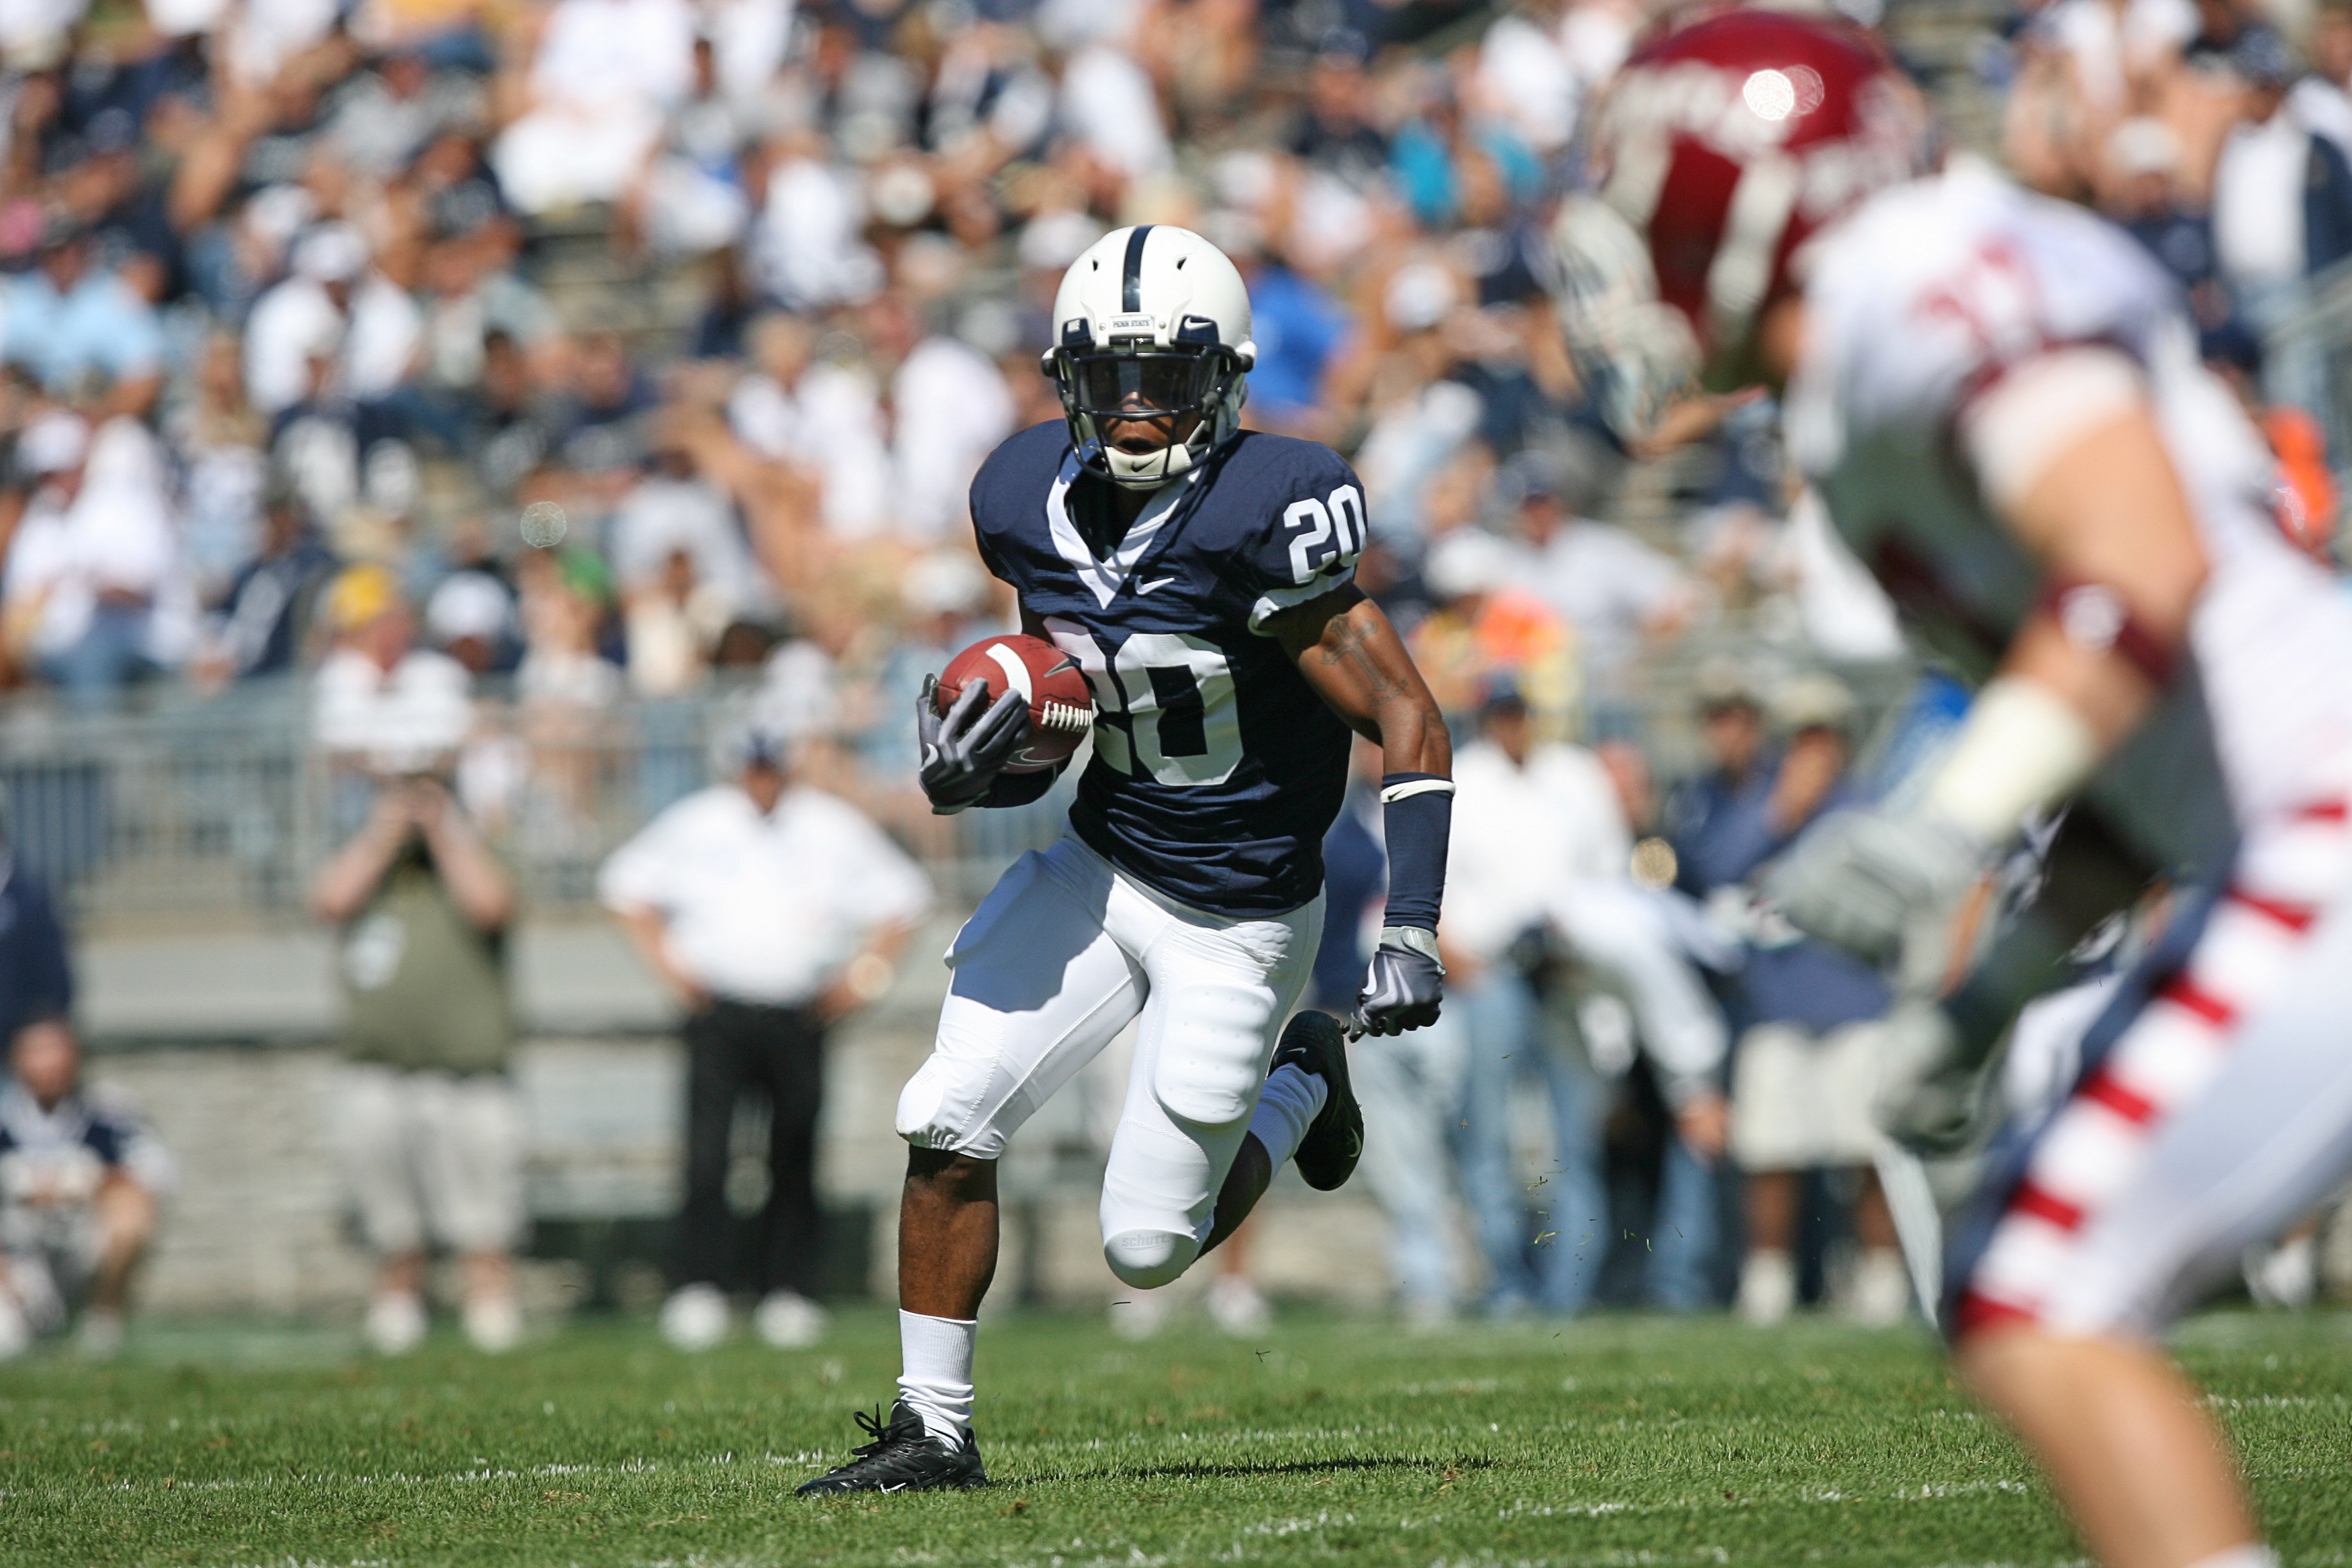 STATE COLLEGE, PA - SEPTEMBER 19: Wide receiver Devon Smith #20 of the Penn State Nittany Lions runs with the ball during a game against the Temple Owls on September 19, 2009 at Beaver Stadium in State College, Pennsylvania. (Photo by Hunter Martin/Getty